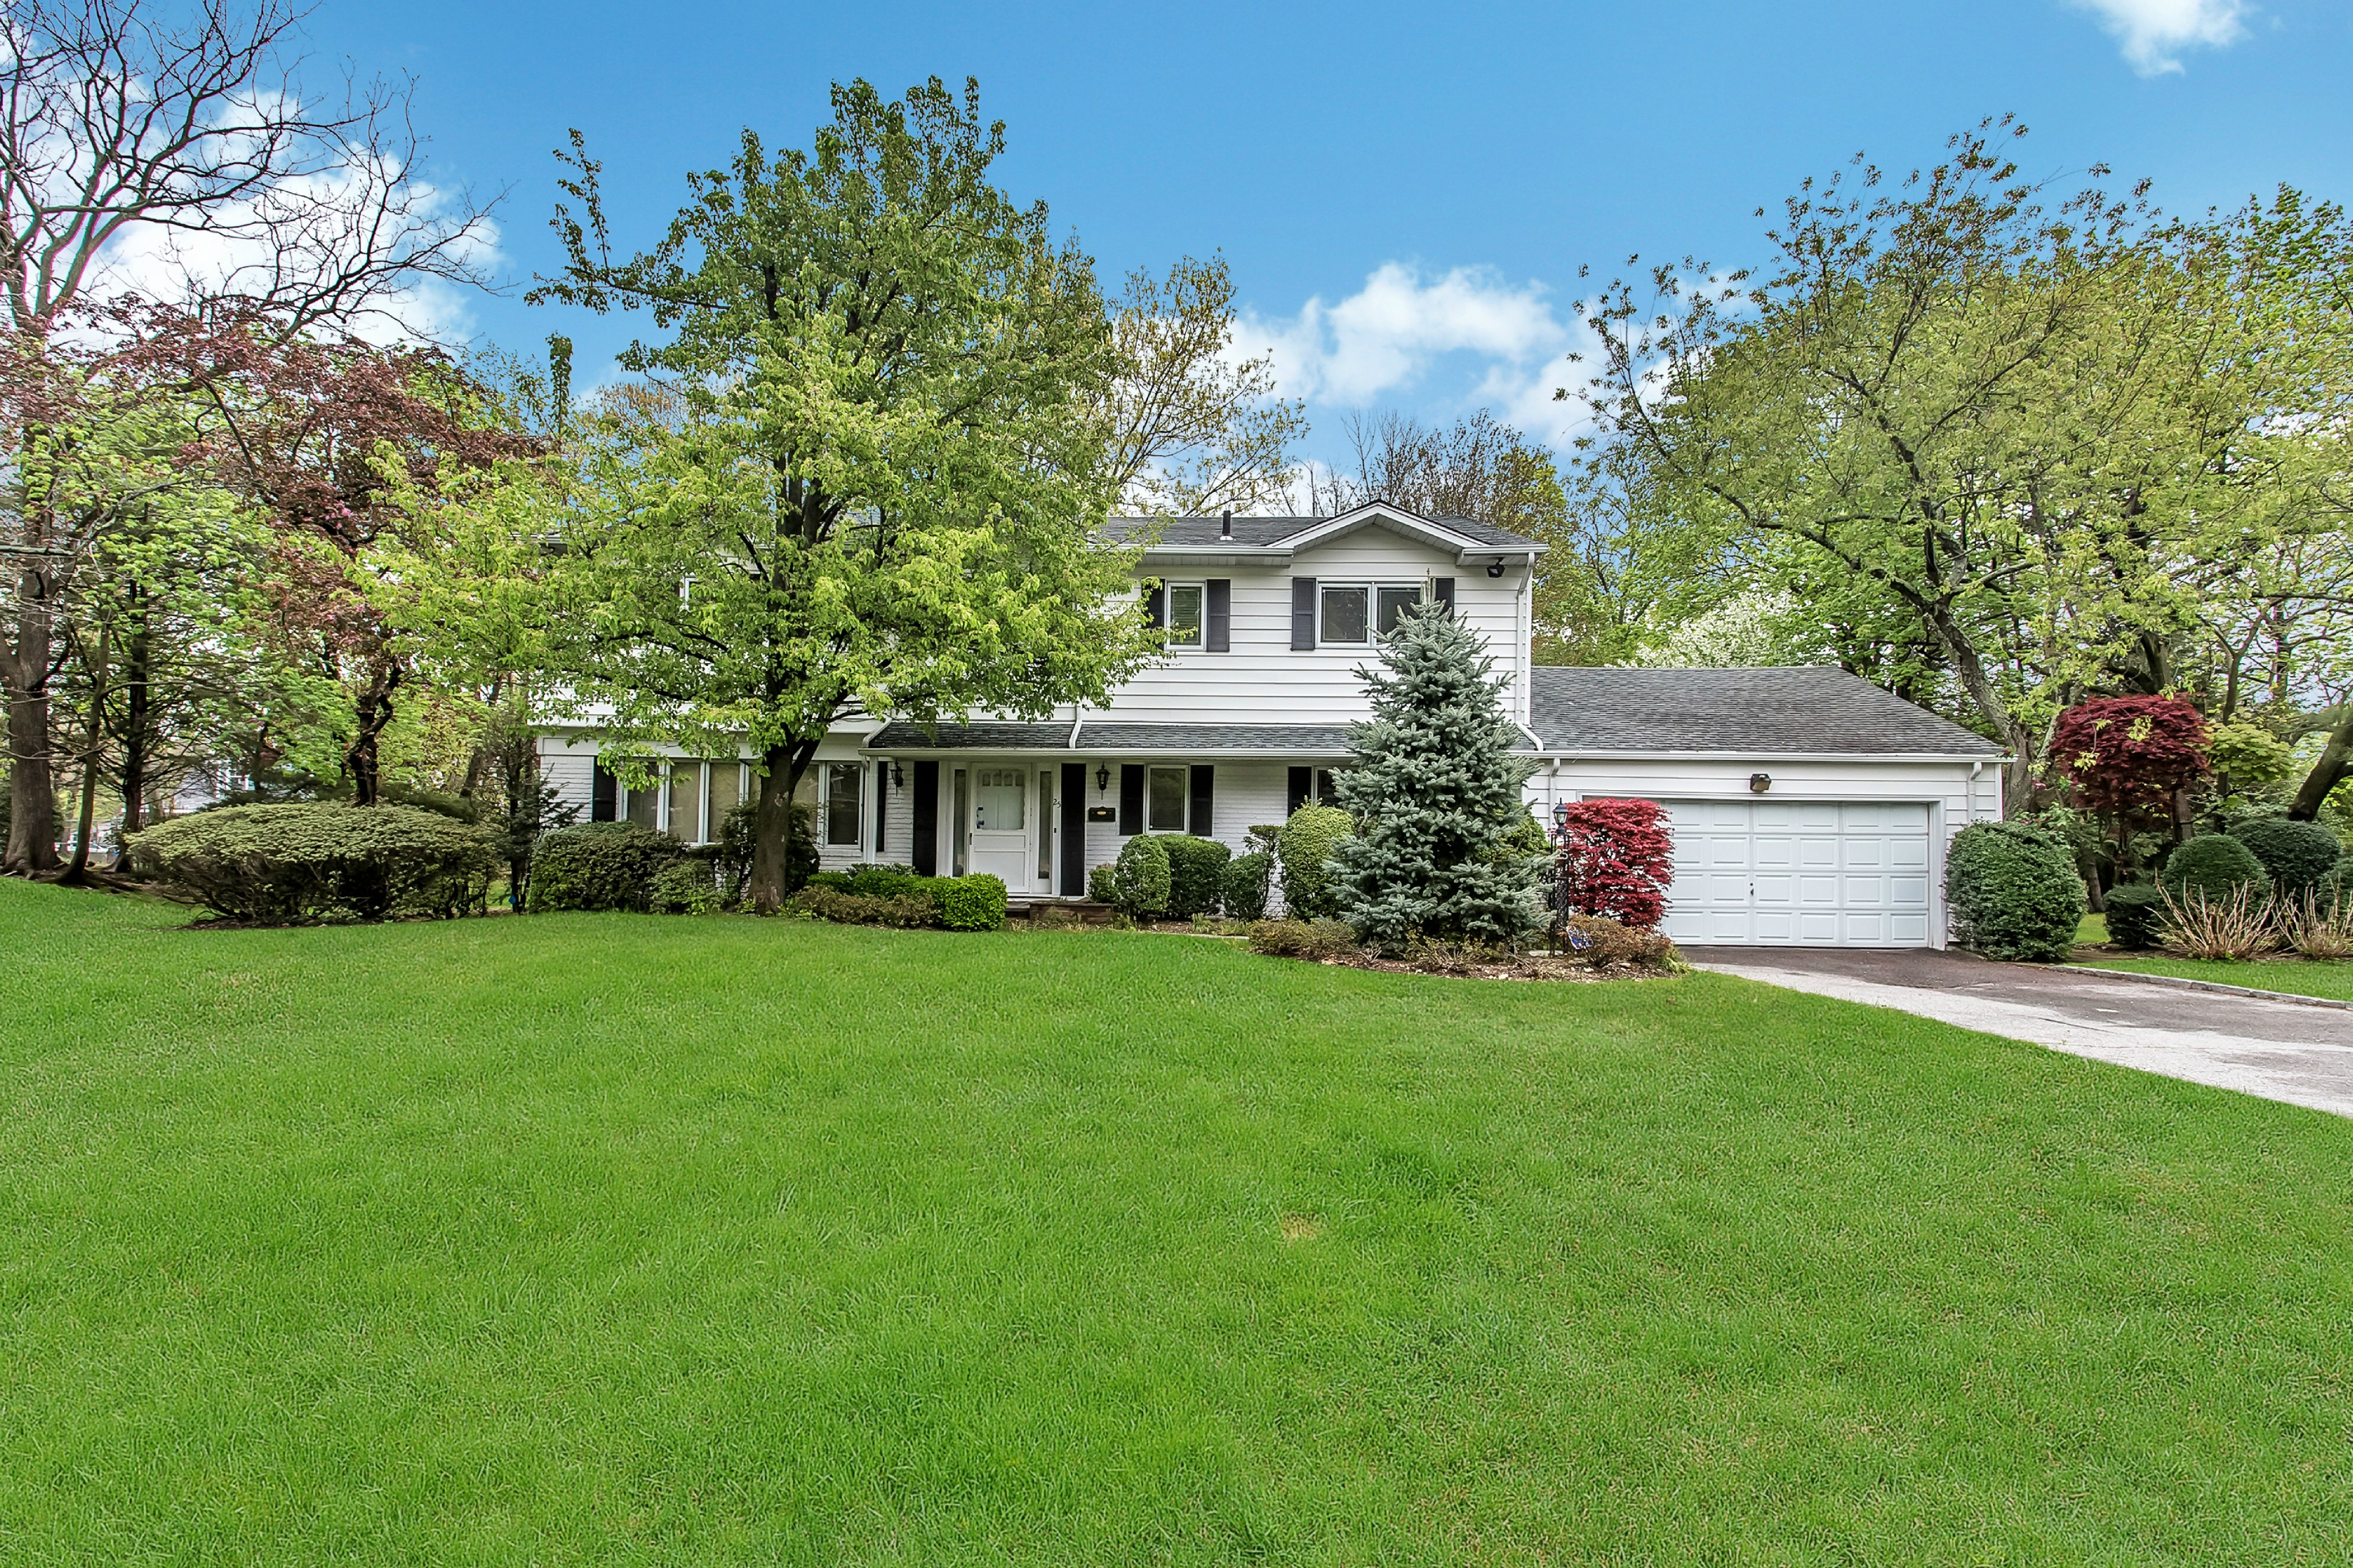 Single Family Home for Sale at Colonial 25 Chestnut Dr East Hills, New York, 11576 United States